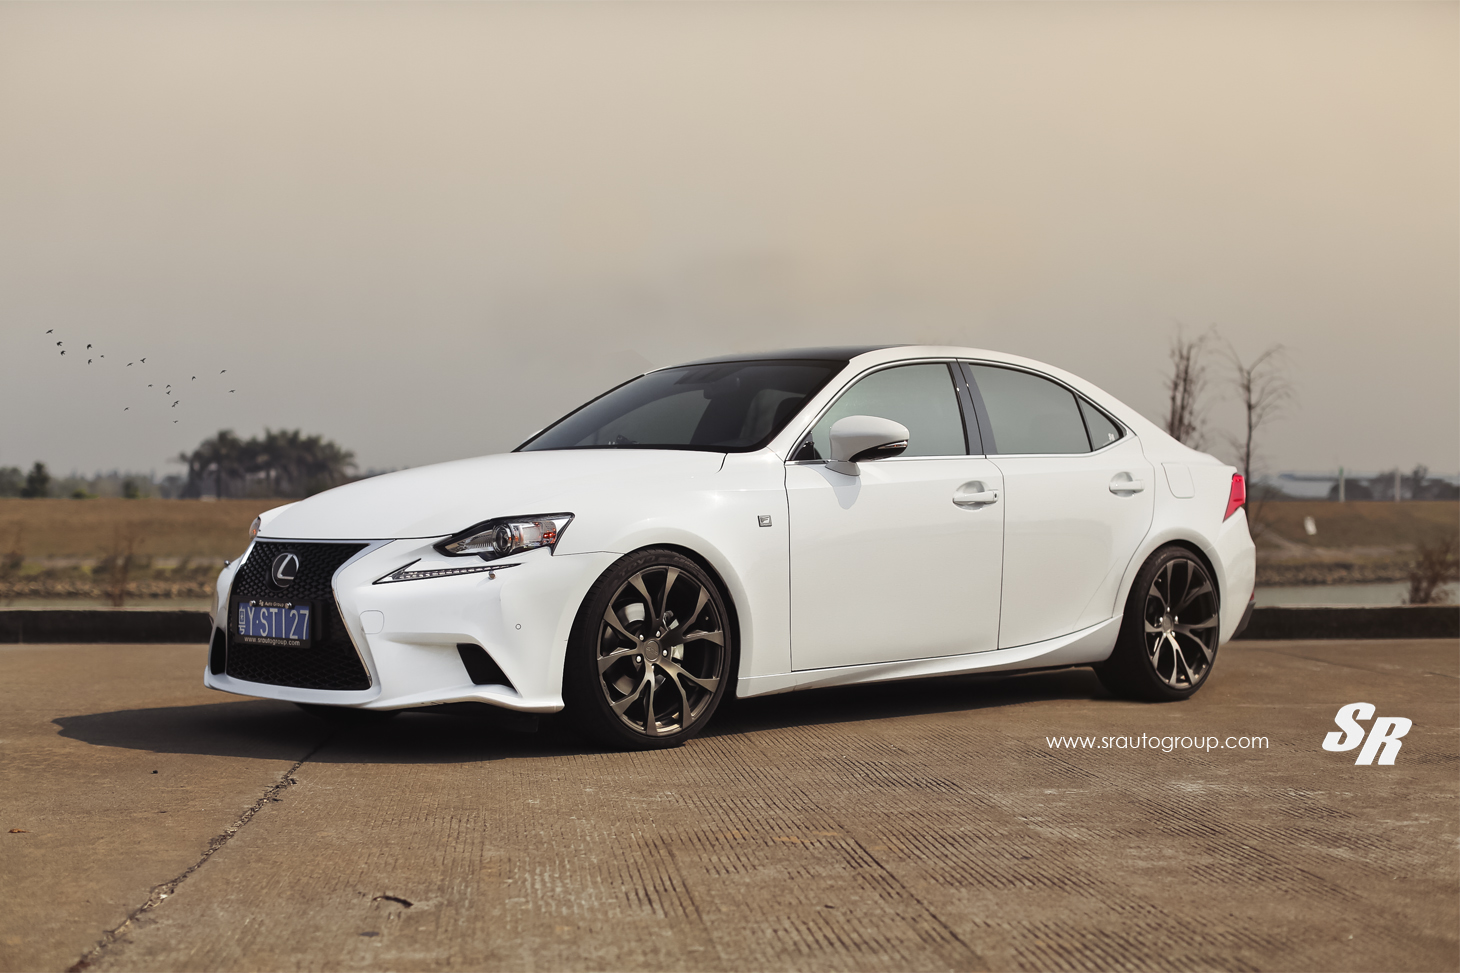 lexus is 250 f sport rocks matte bronze pur wheels. Black Bedroom Furniture Sets. Home Design Ideas